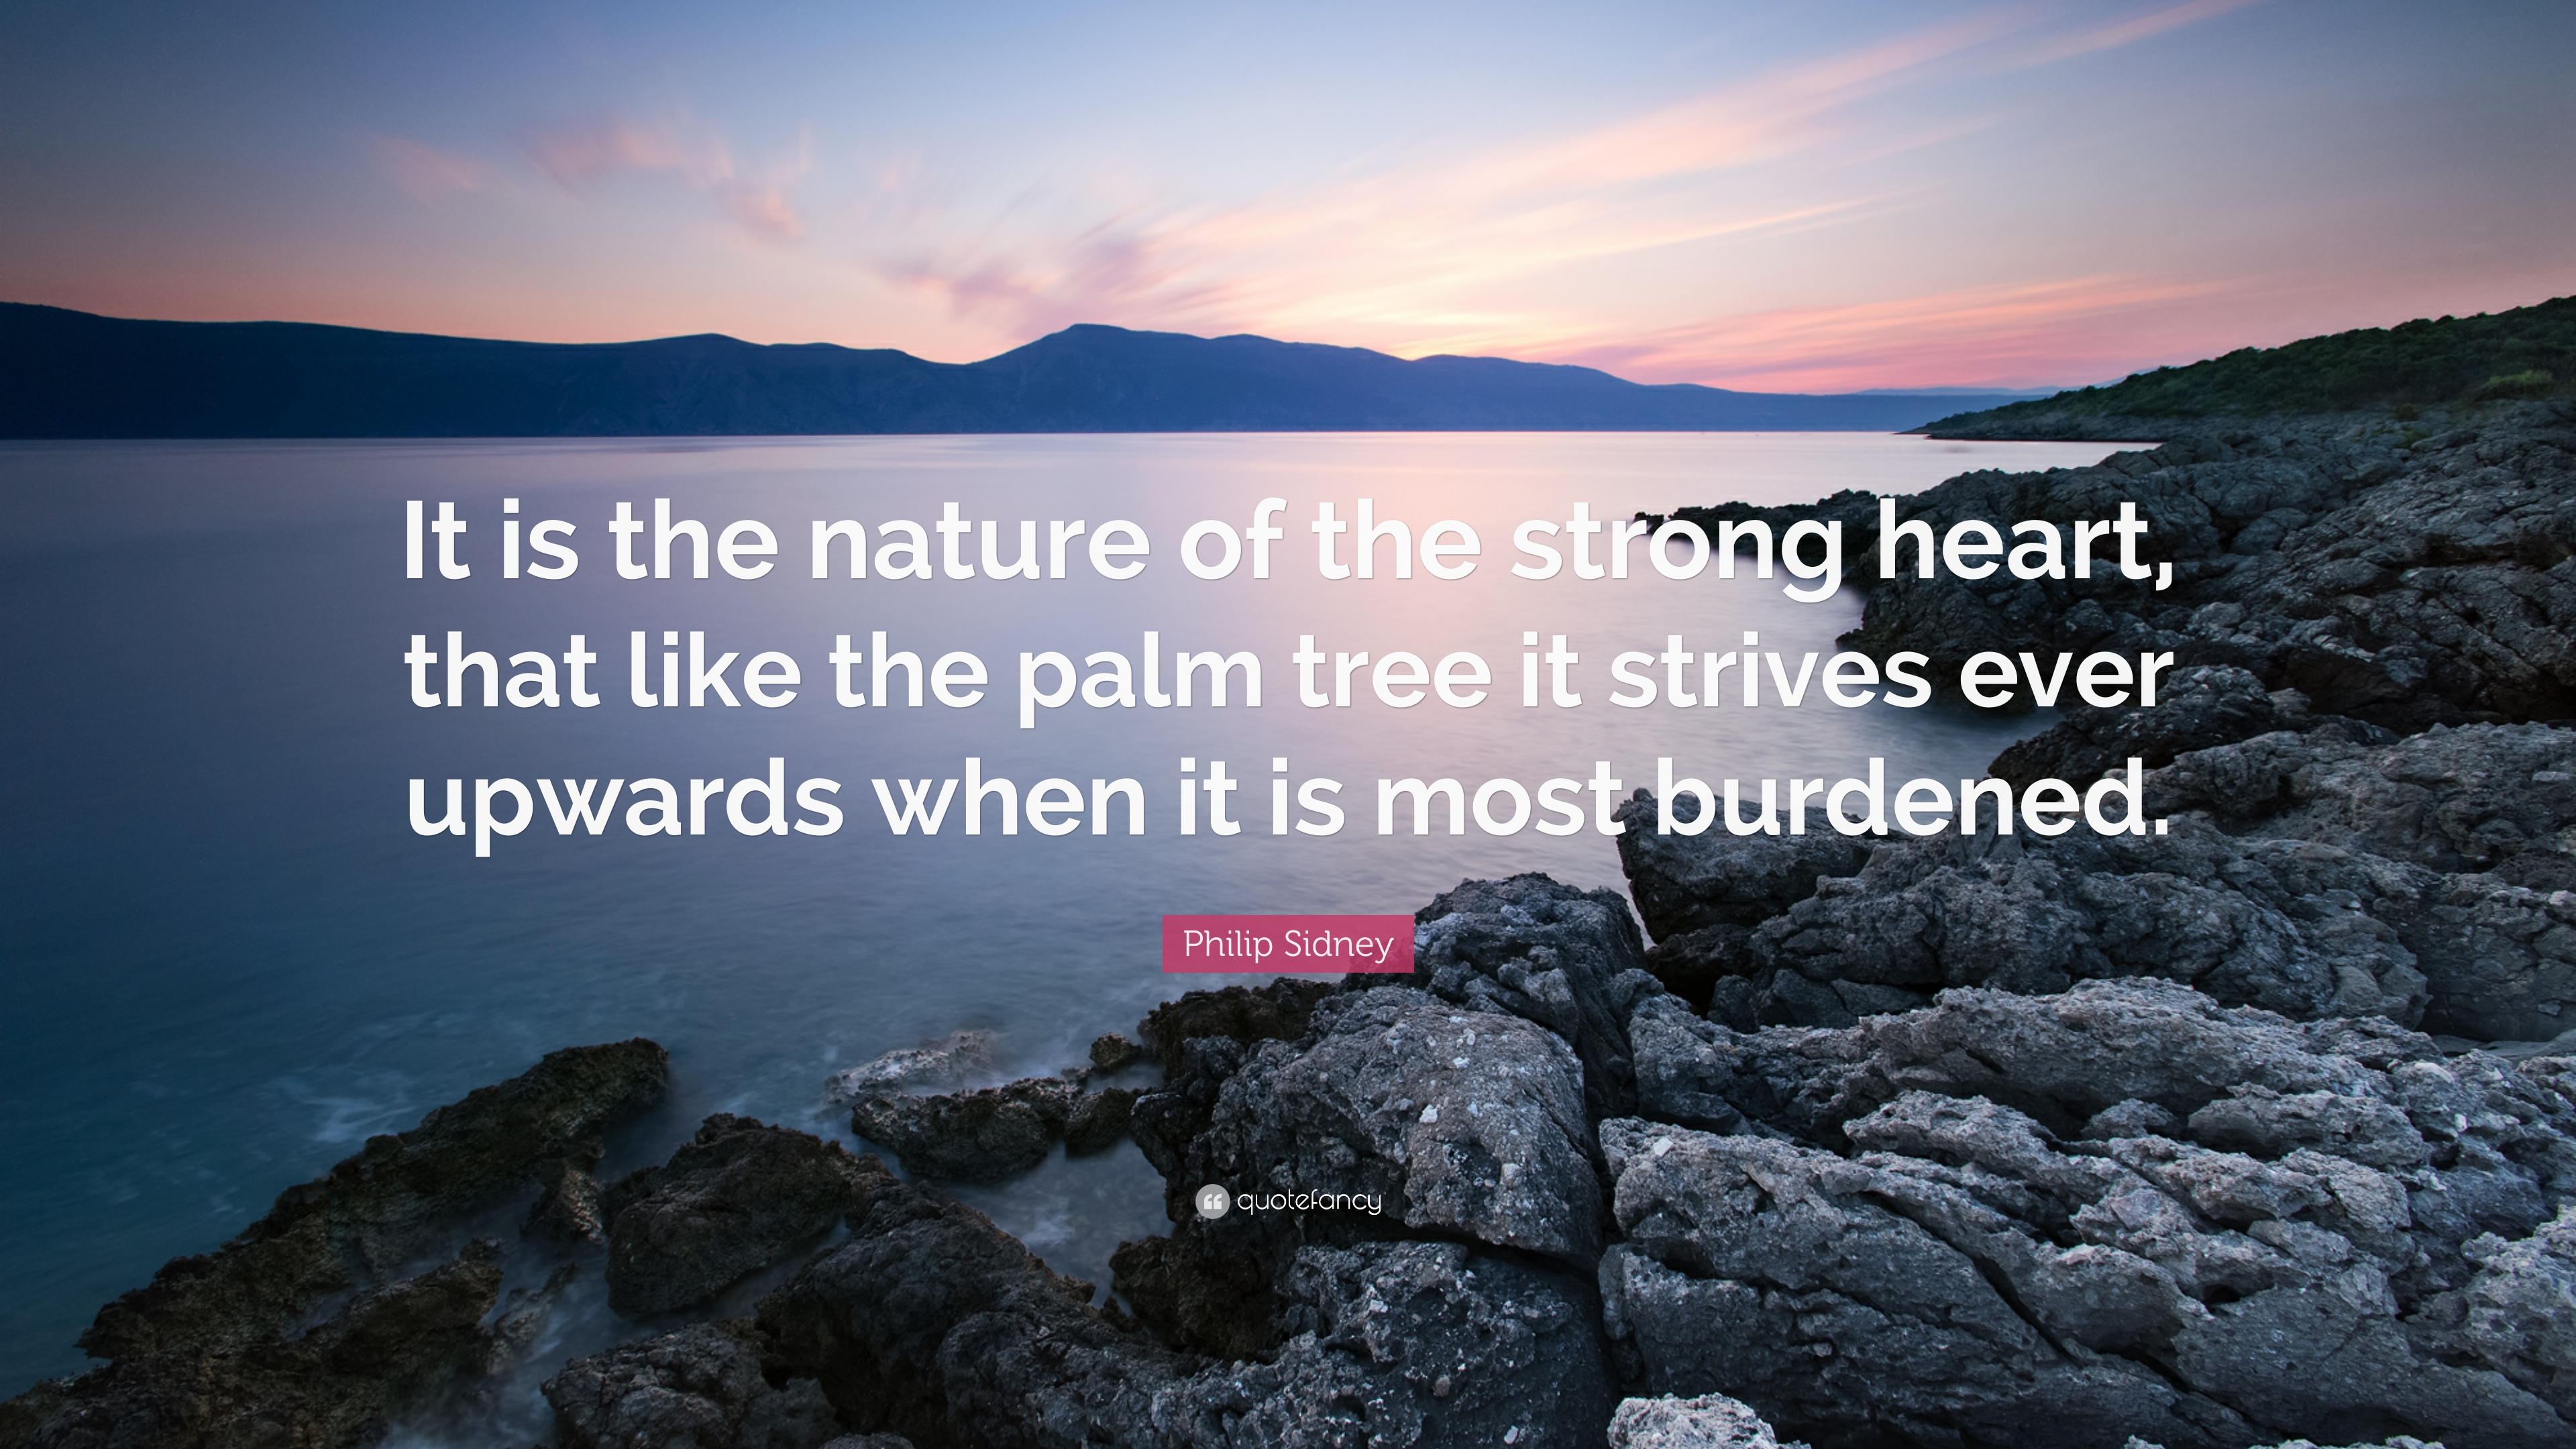 Philip Sidney Quote It Is The Nature Of The Strong Heart That